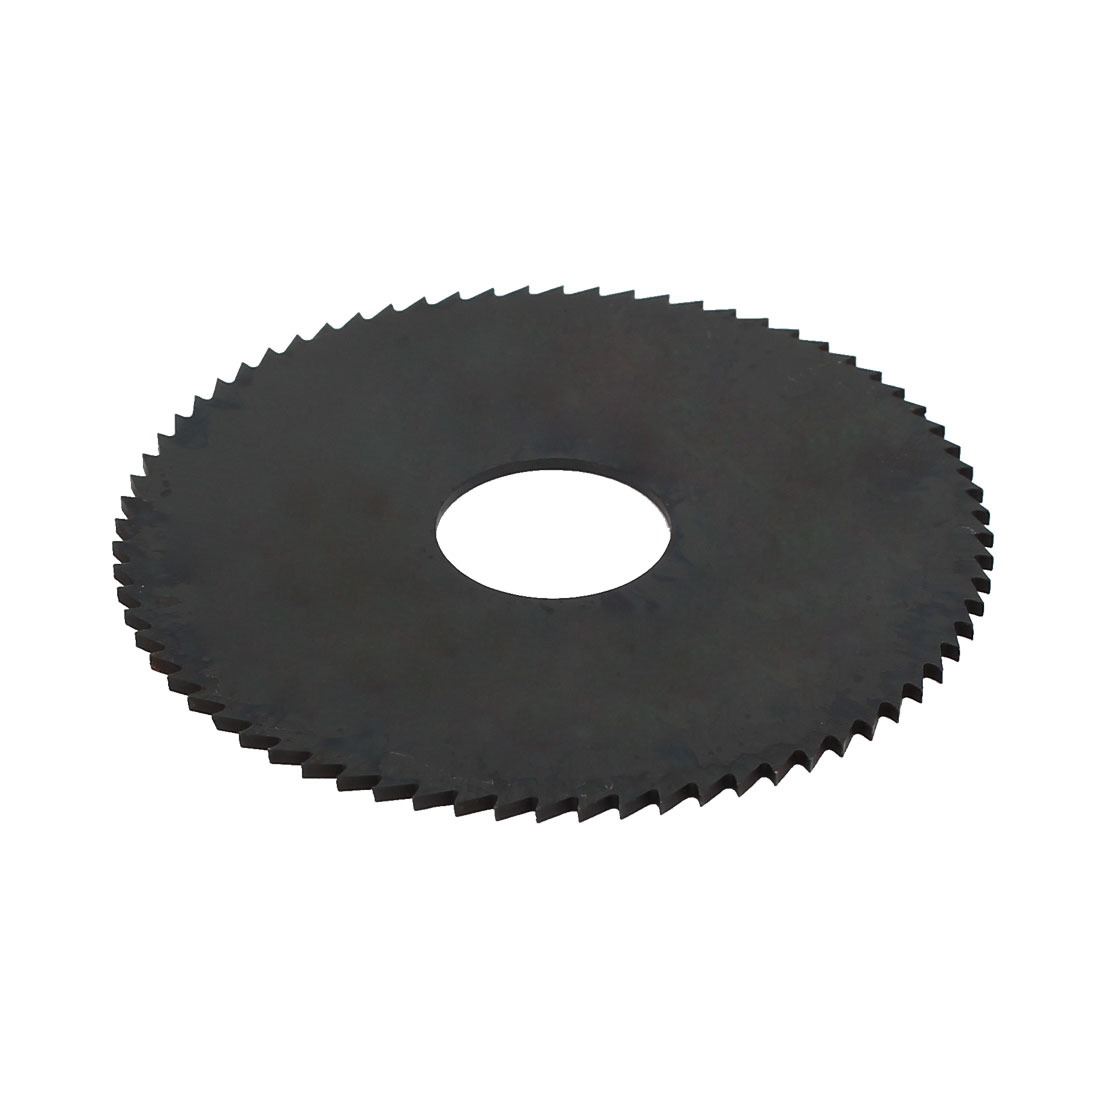 60mmx1.2mm 72 Teeth HSS Circular Slitting Saw Cutter Cutting Tool Black